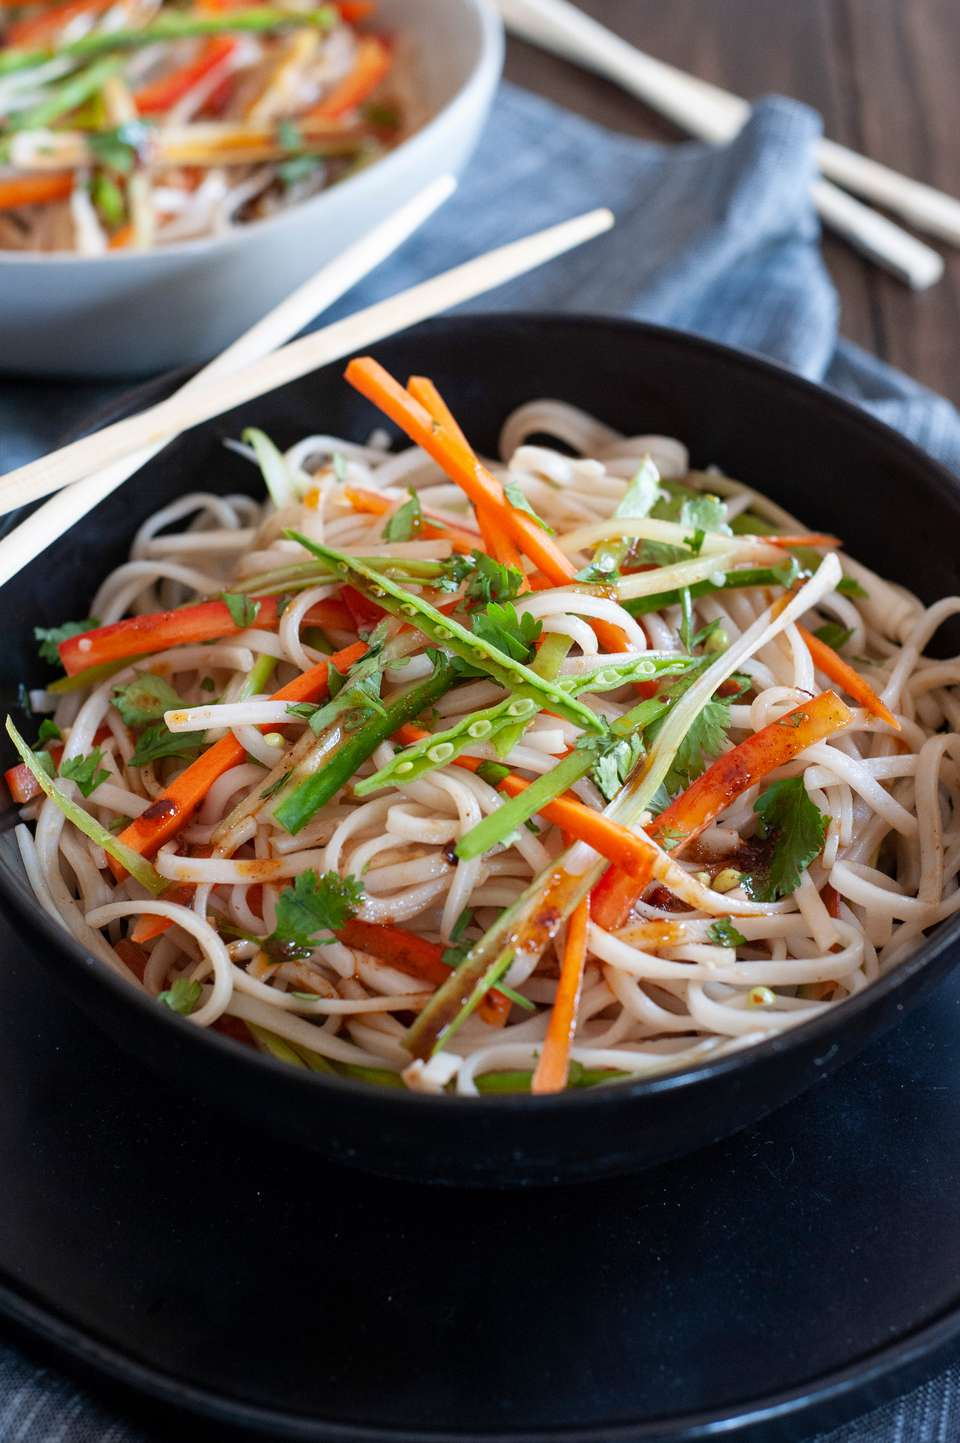 Rice noodle salad with sesame dressing in a black bowl and topped with thinly sliced vegetables.